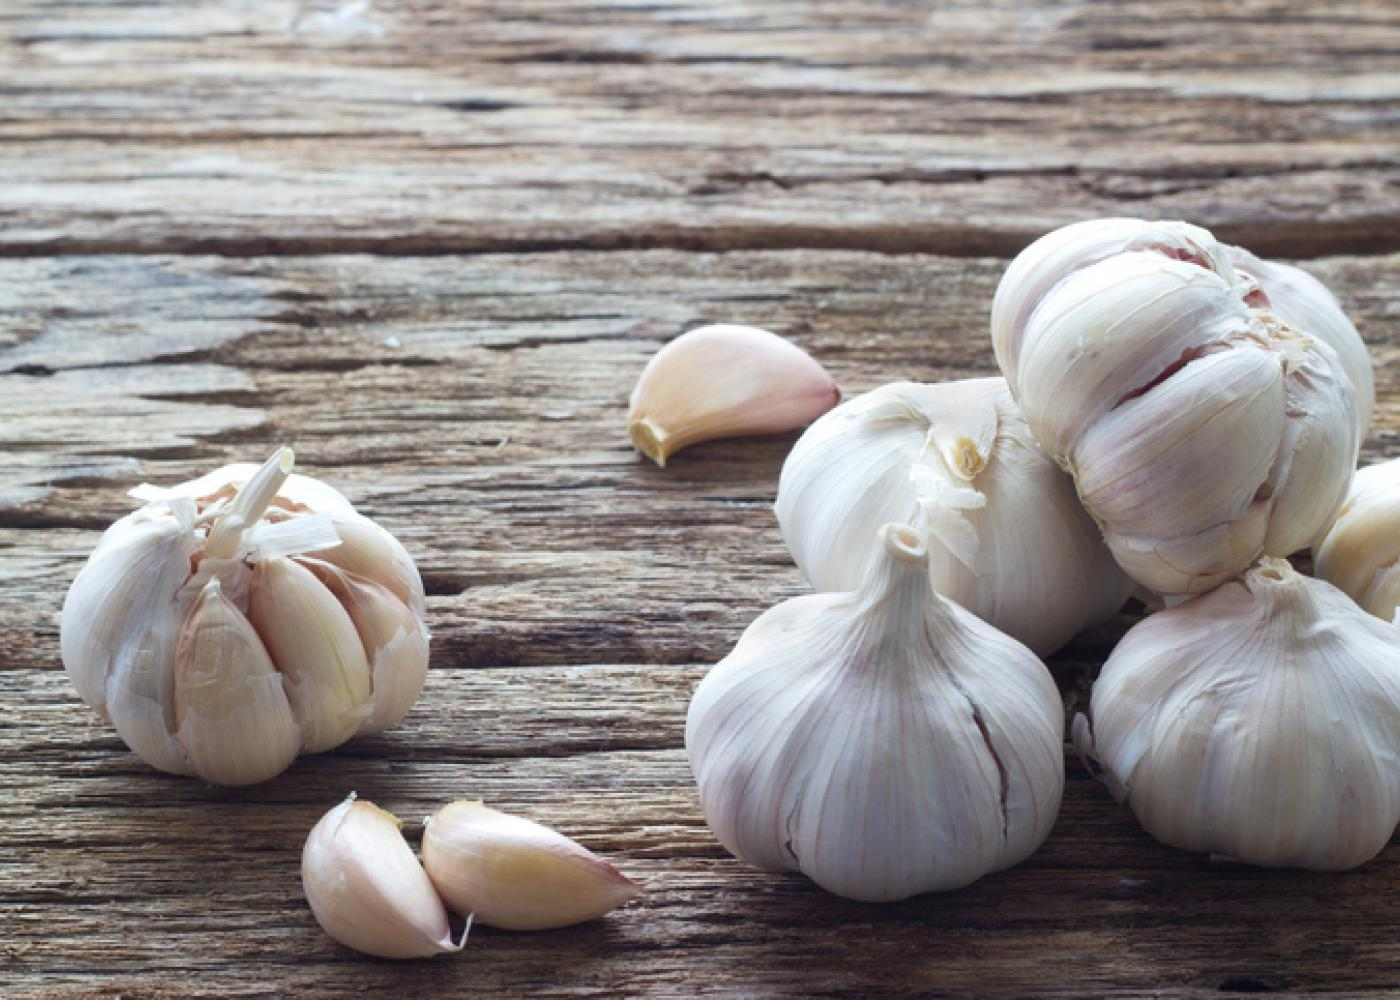 whole heads of garlic on a wood table